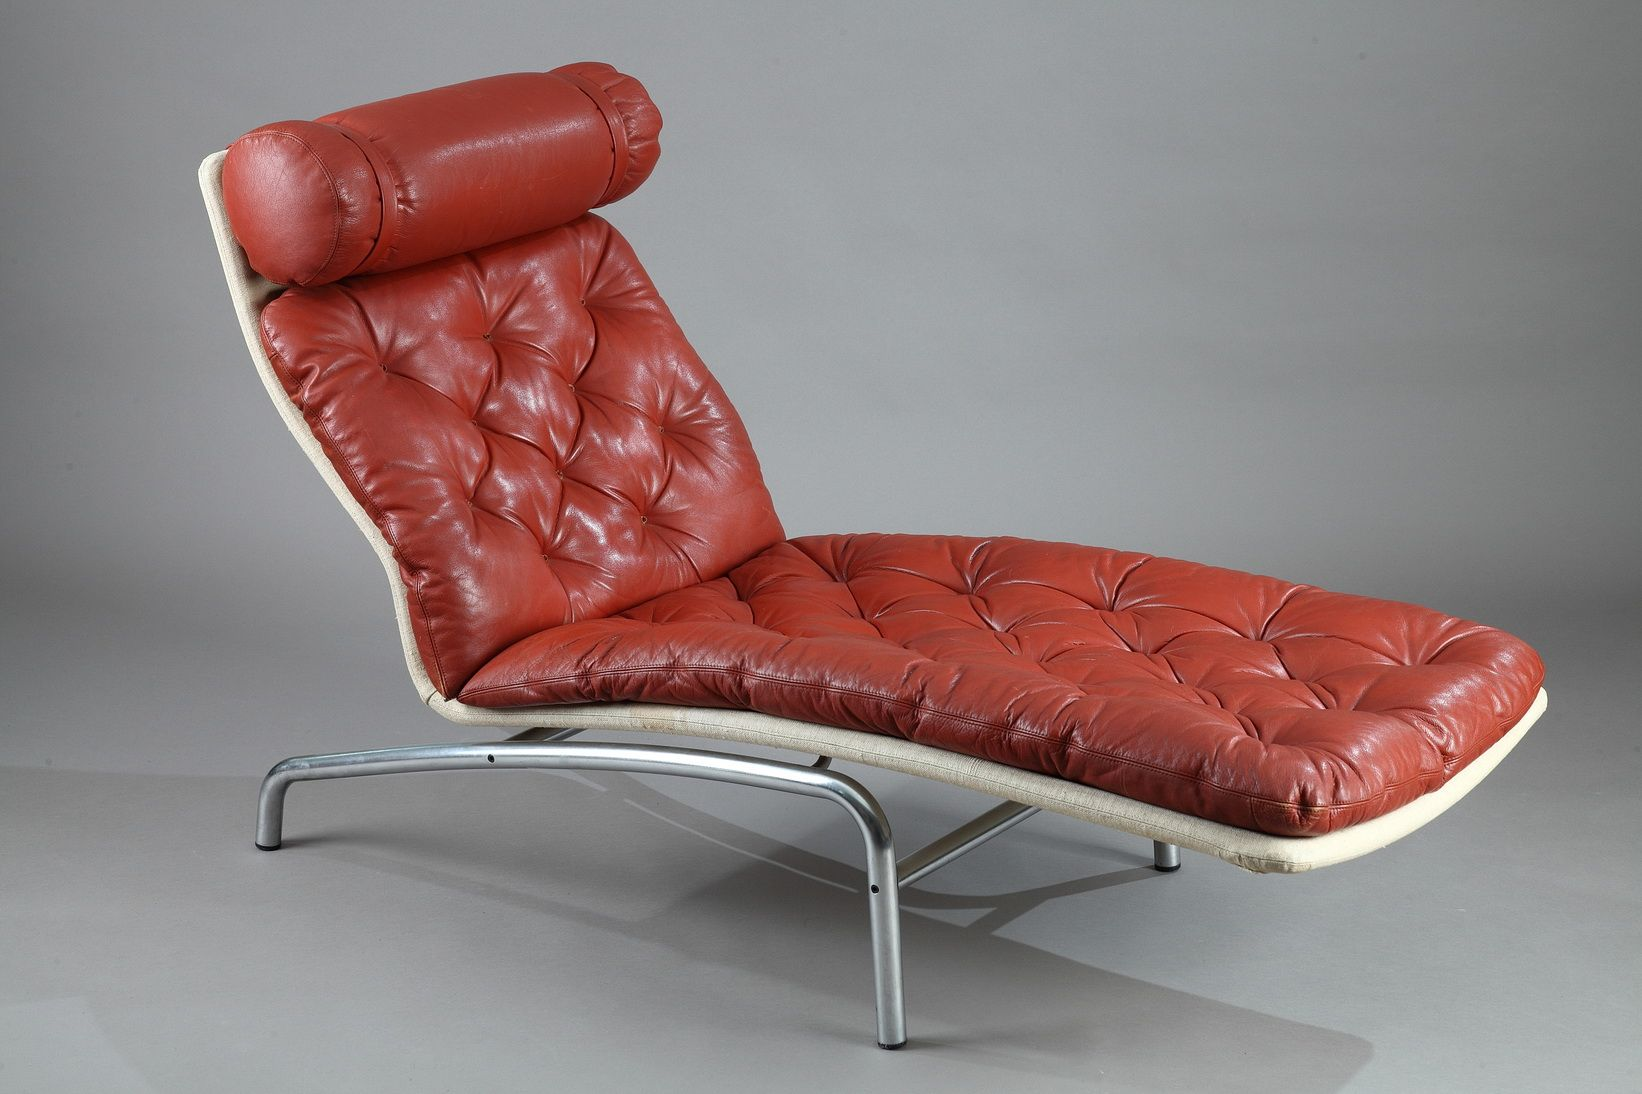 chaise longue with a mat chromed steel frame and red leather by arne vodder for erik j rgensen. Black Bedroom Furniture Sets. Home Design Ideas